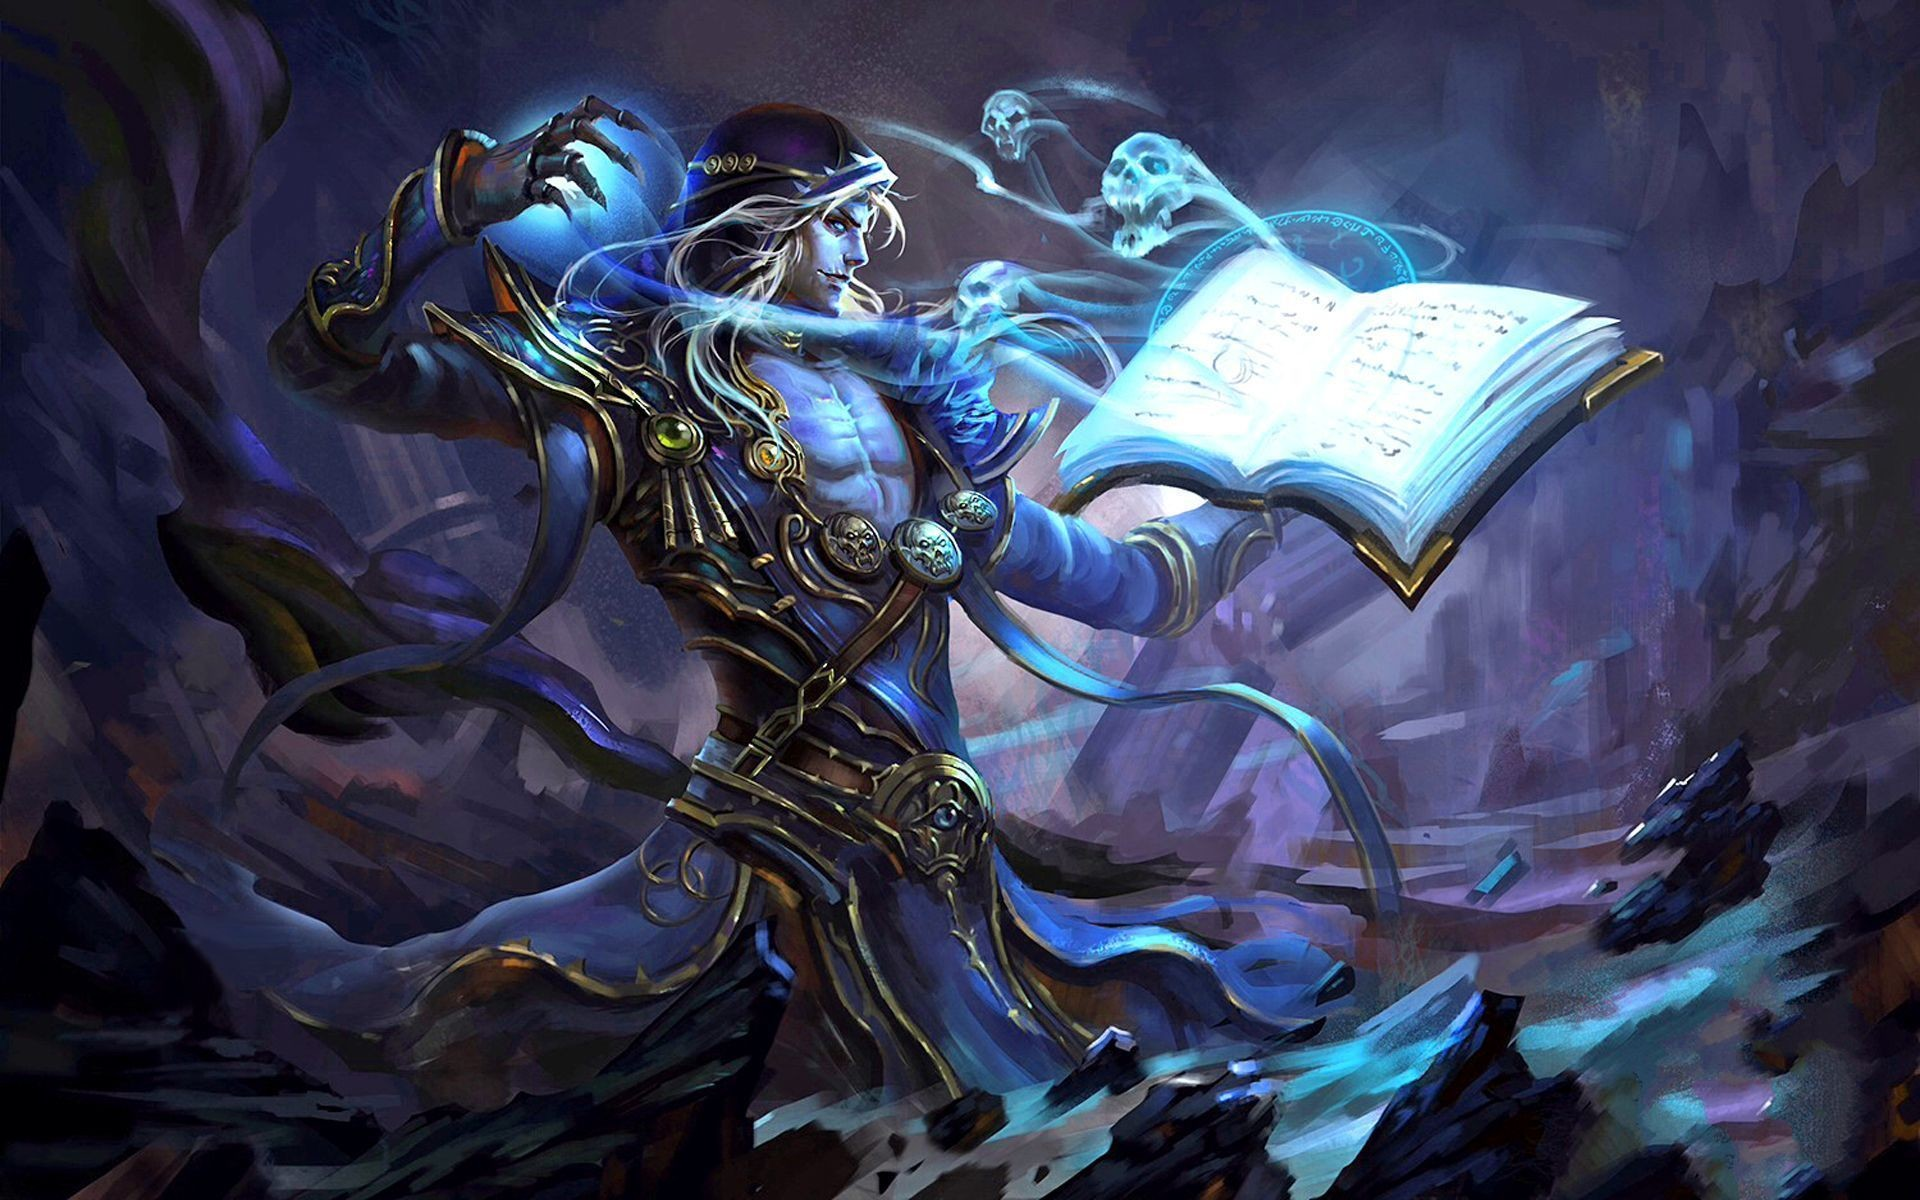 Fantasy Wizard Background 1 Hd Wallpapers: Wizard Wallpaper HD (73+ Images